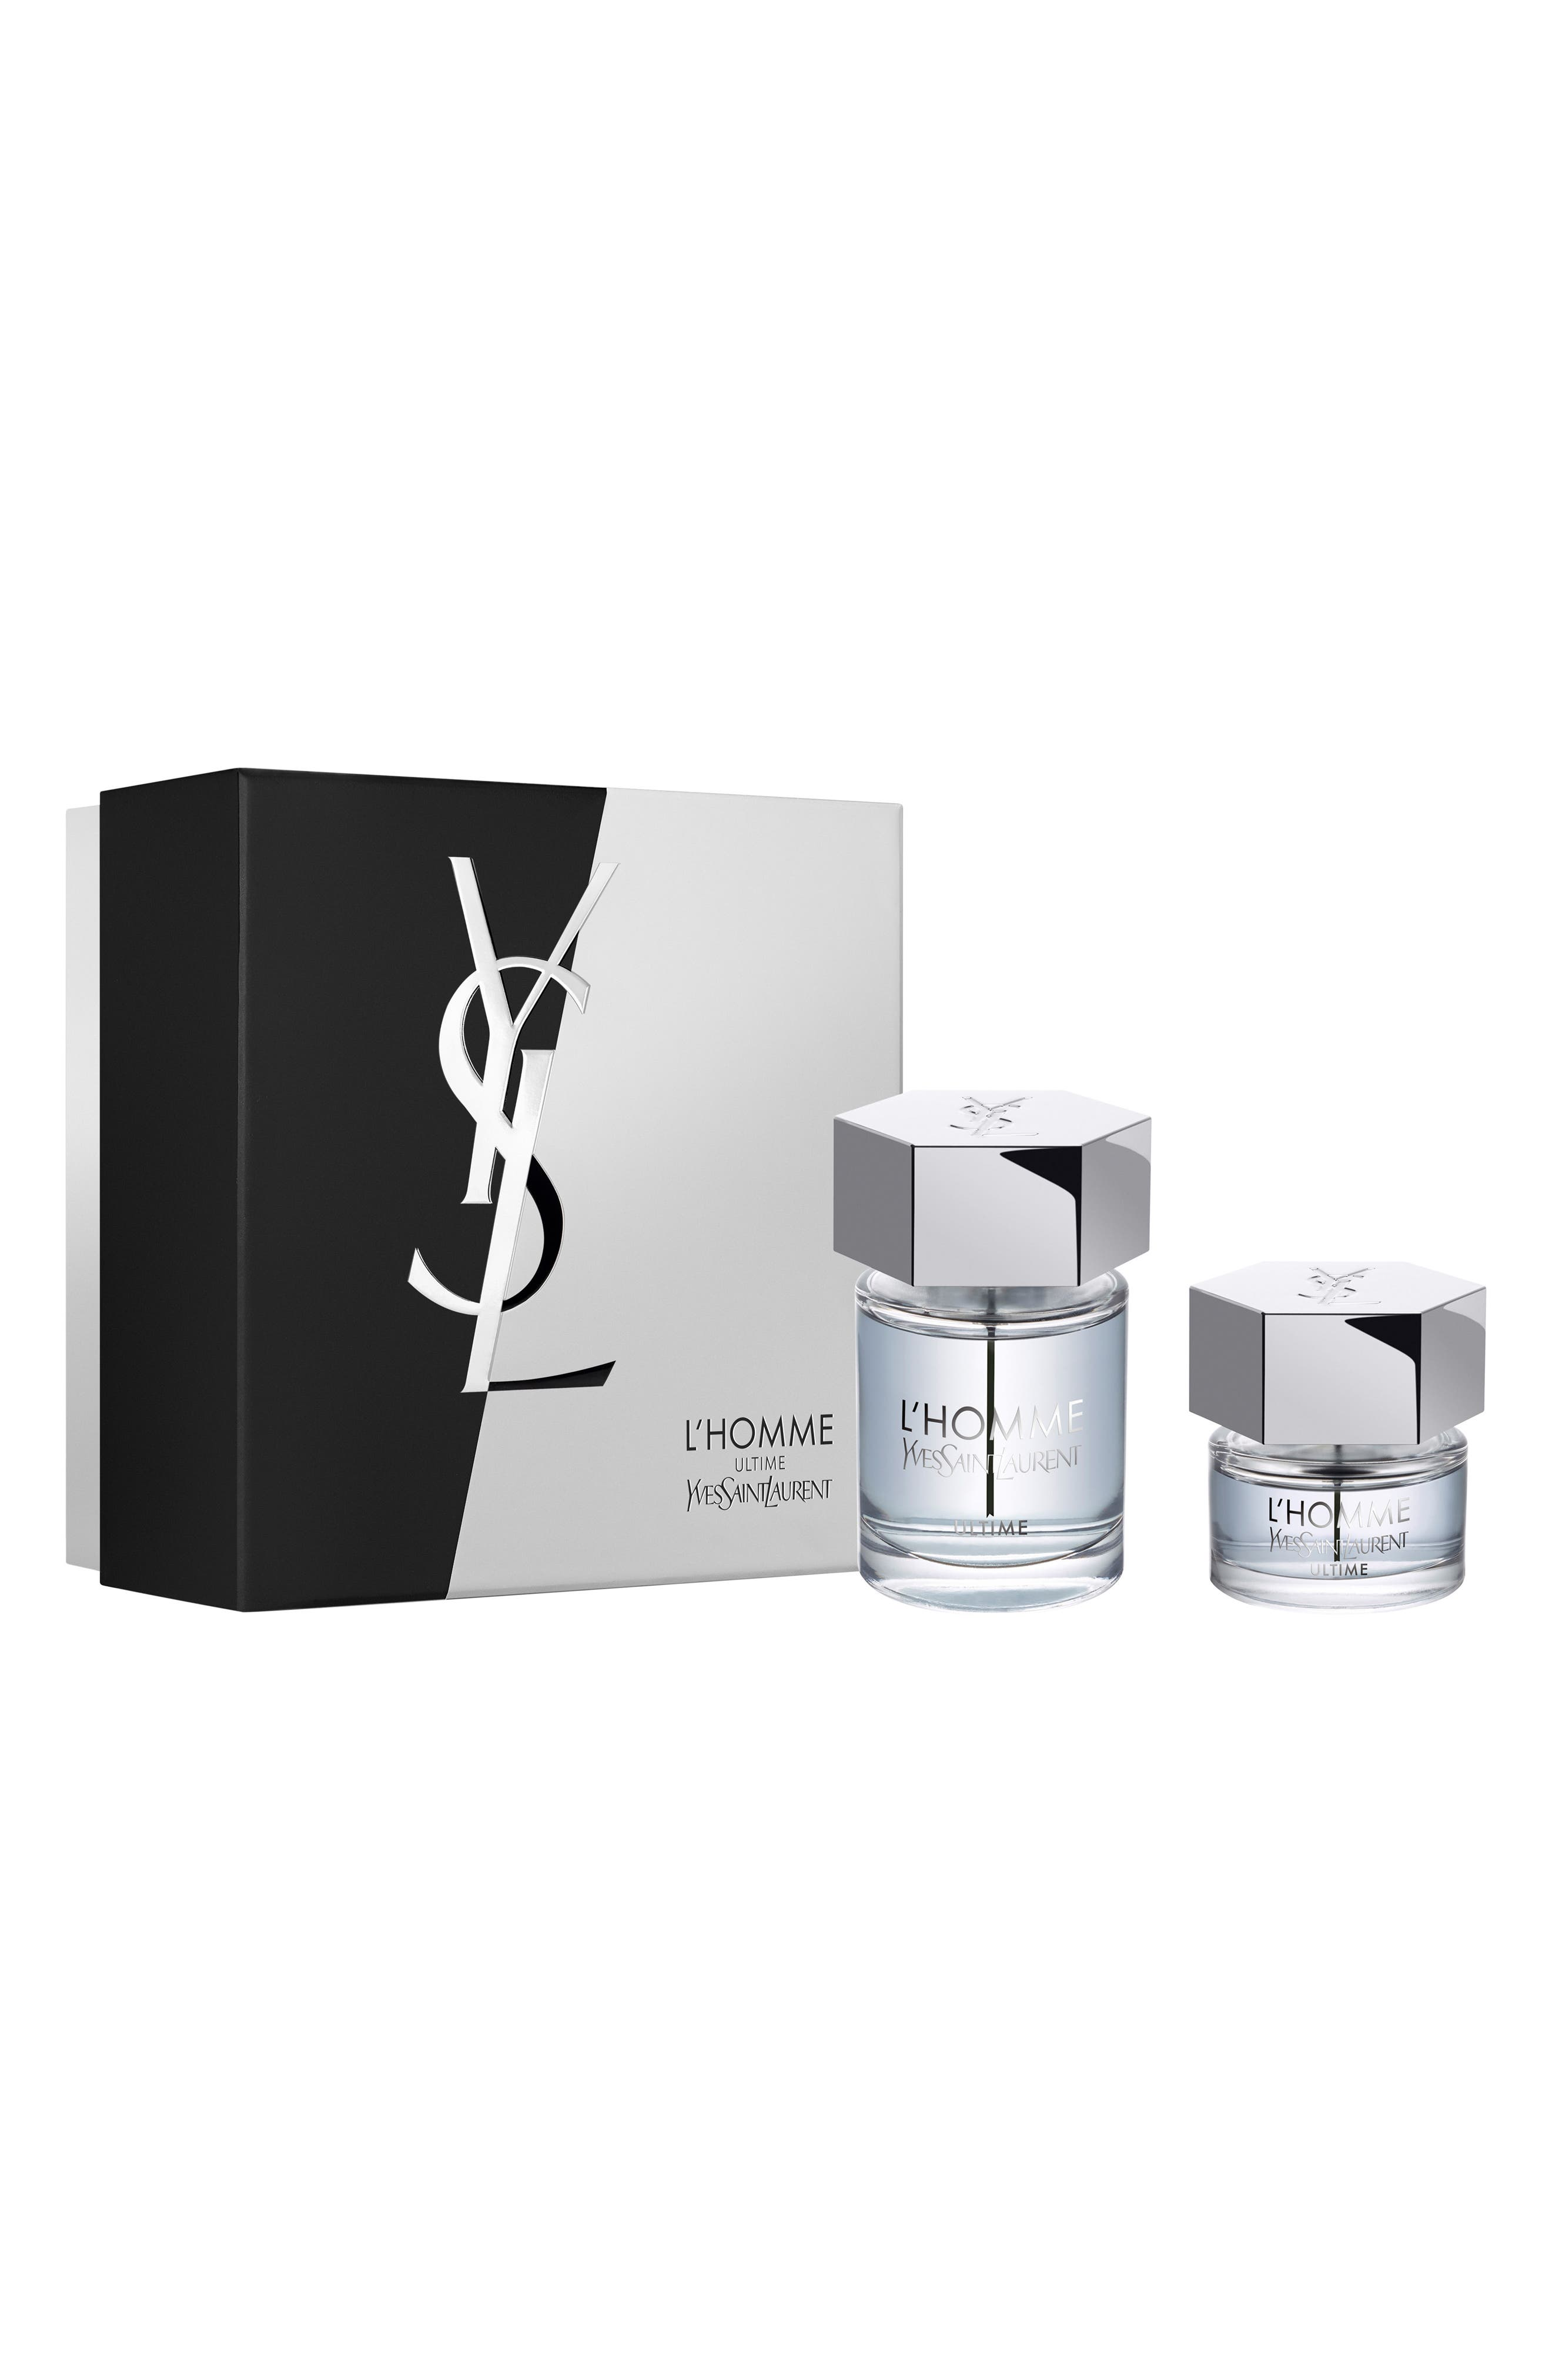 Yves Saint Laurent L'Homme Ultime Eau de Toilette Set ($174 Value)